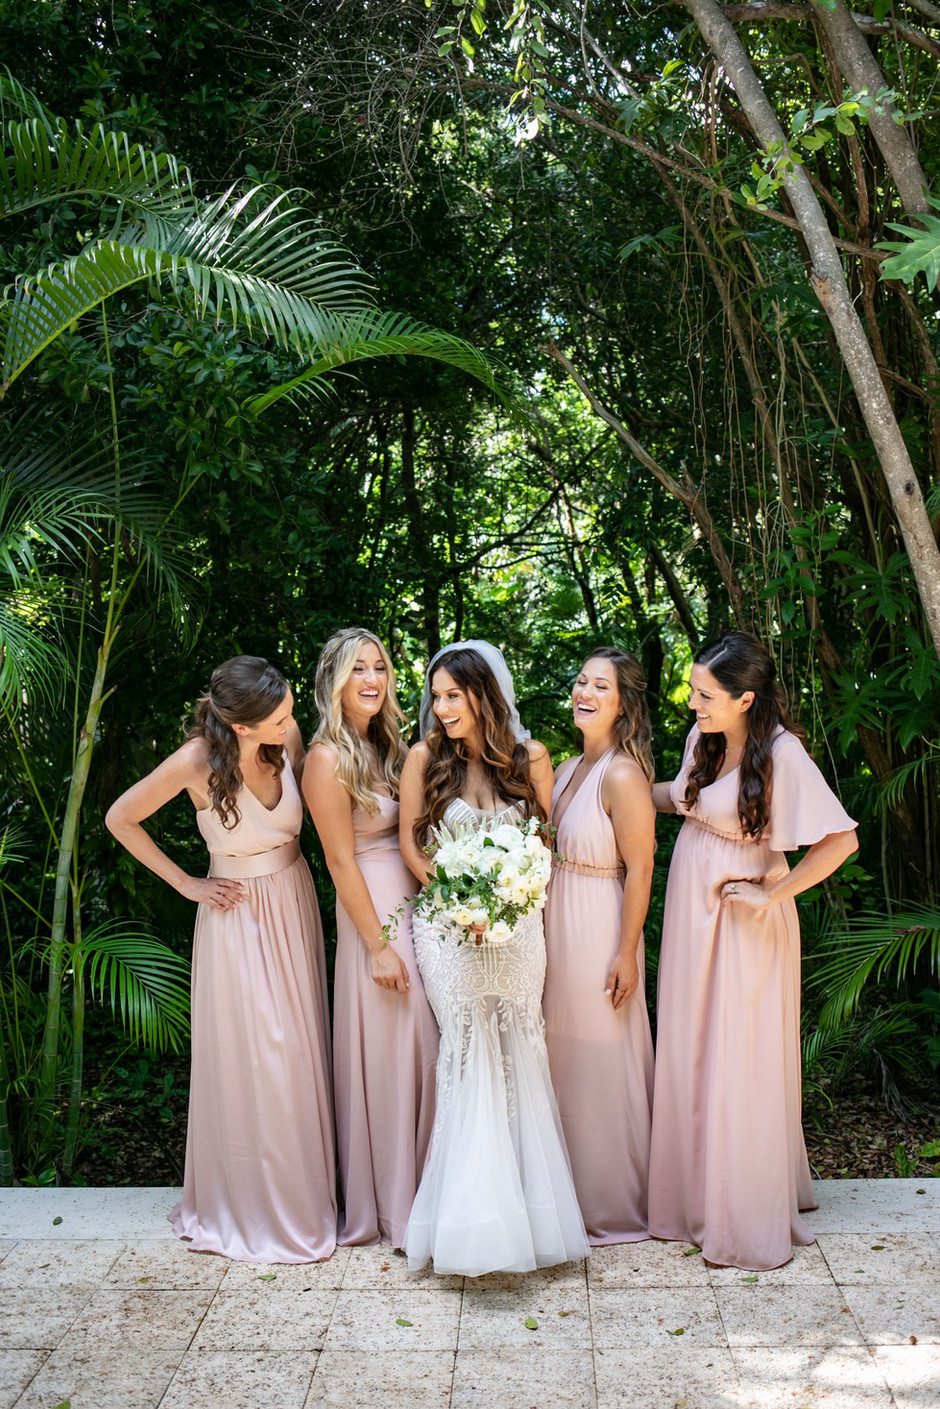 Bridesmaids Dresses For Beach Wedding